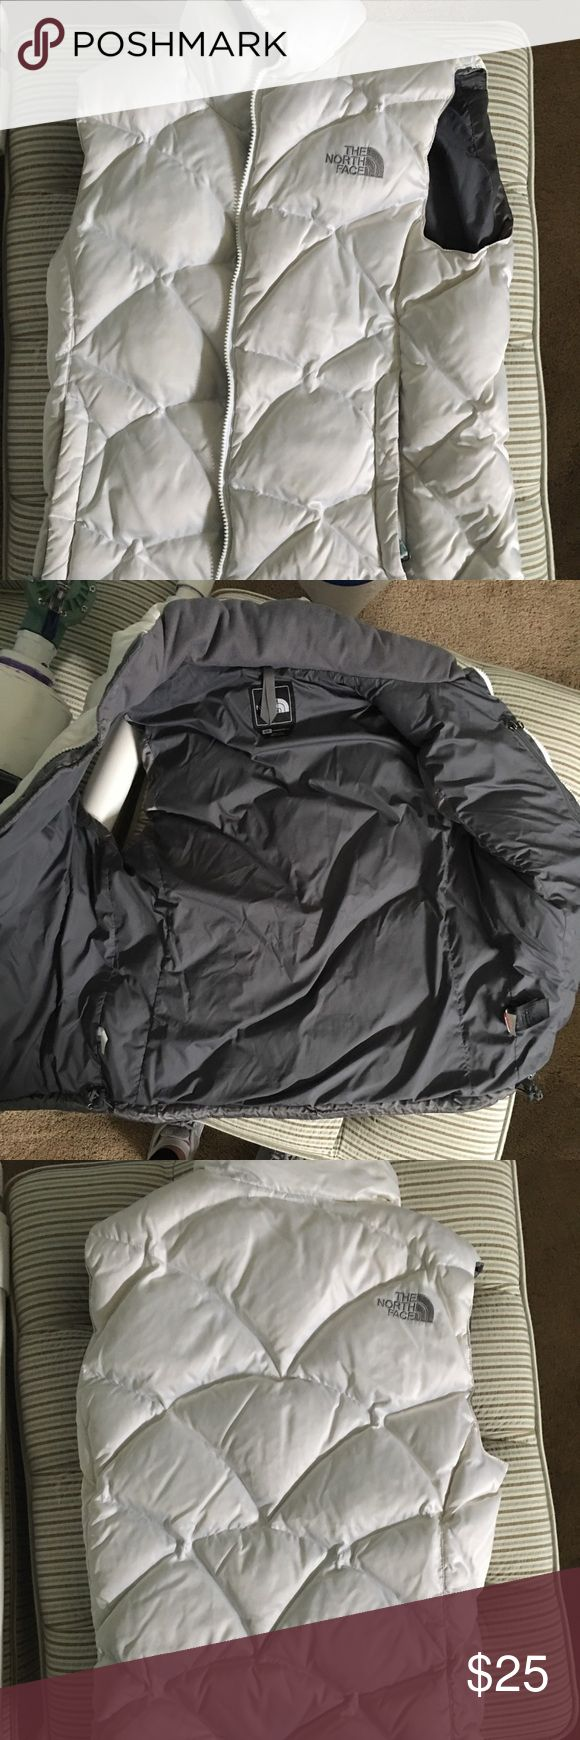 North face vest White north face vest North Face Jackets & Coats Vests